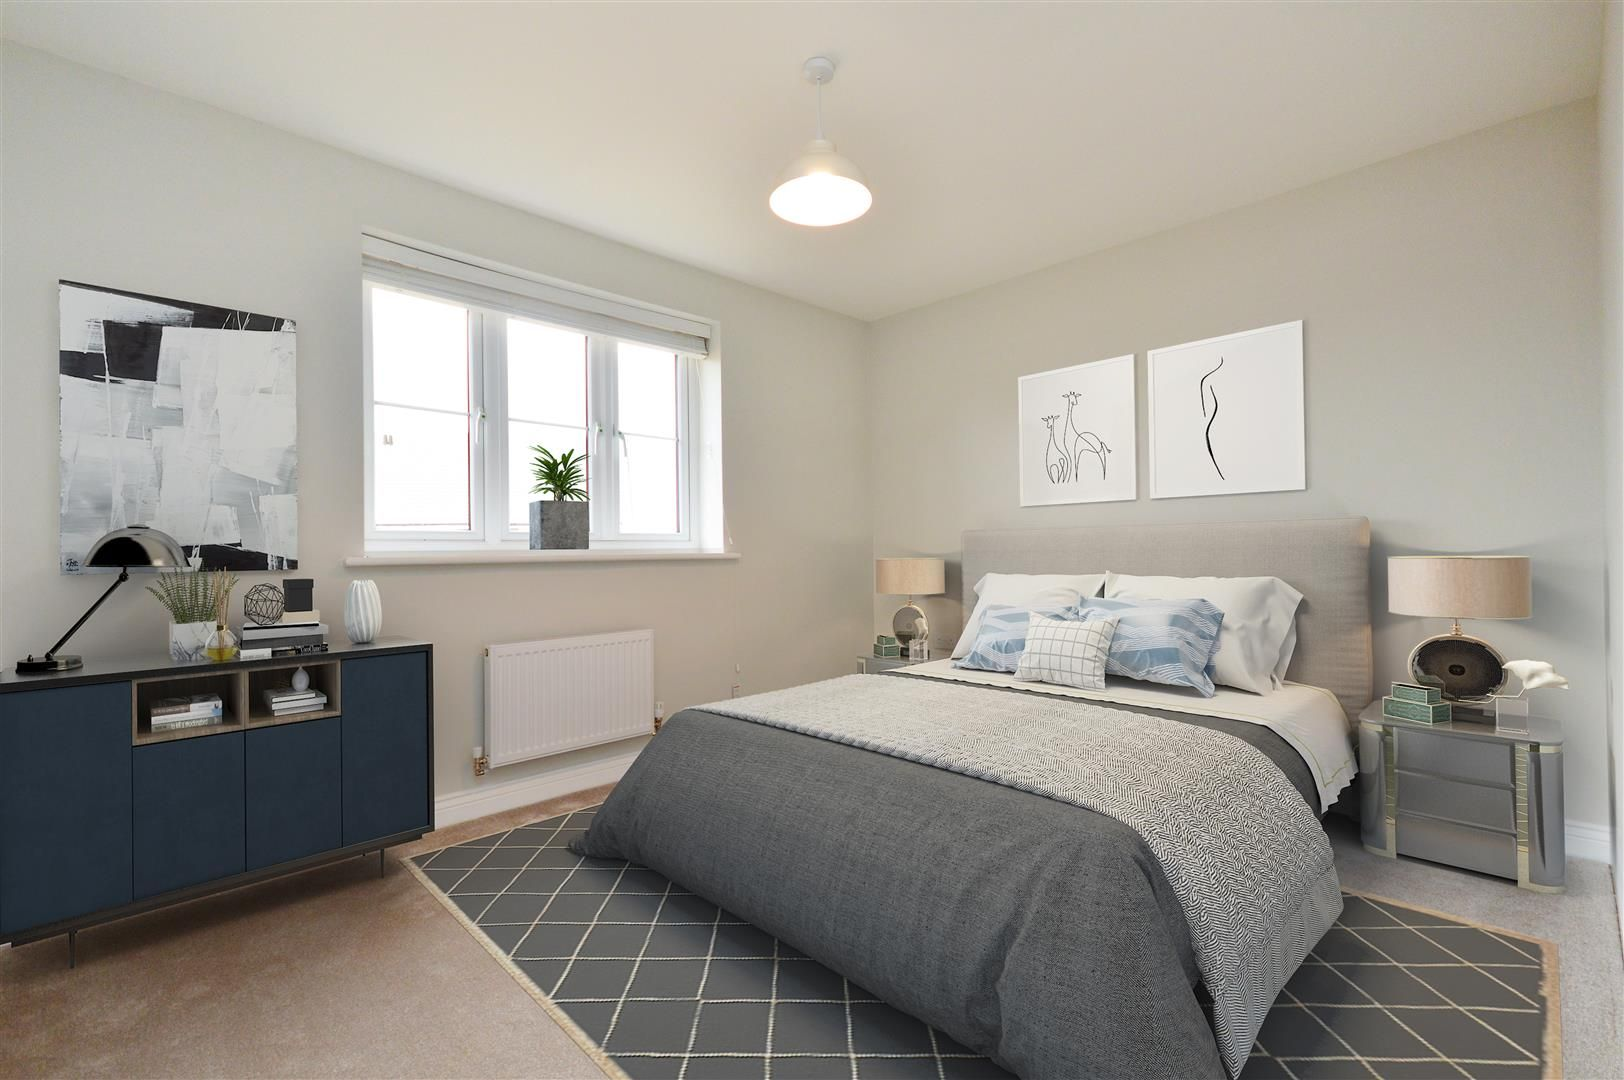 2 bed semi-detached for sale in Kingstone  - Property Image 2